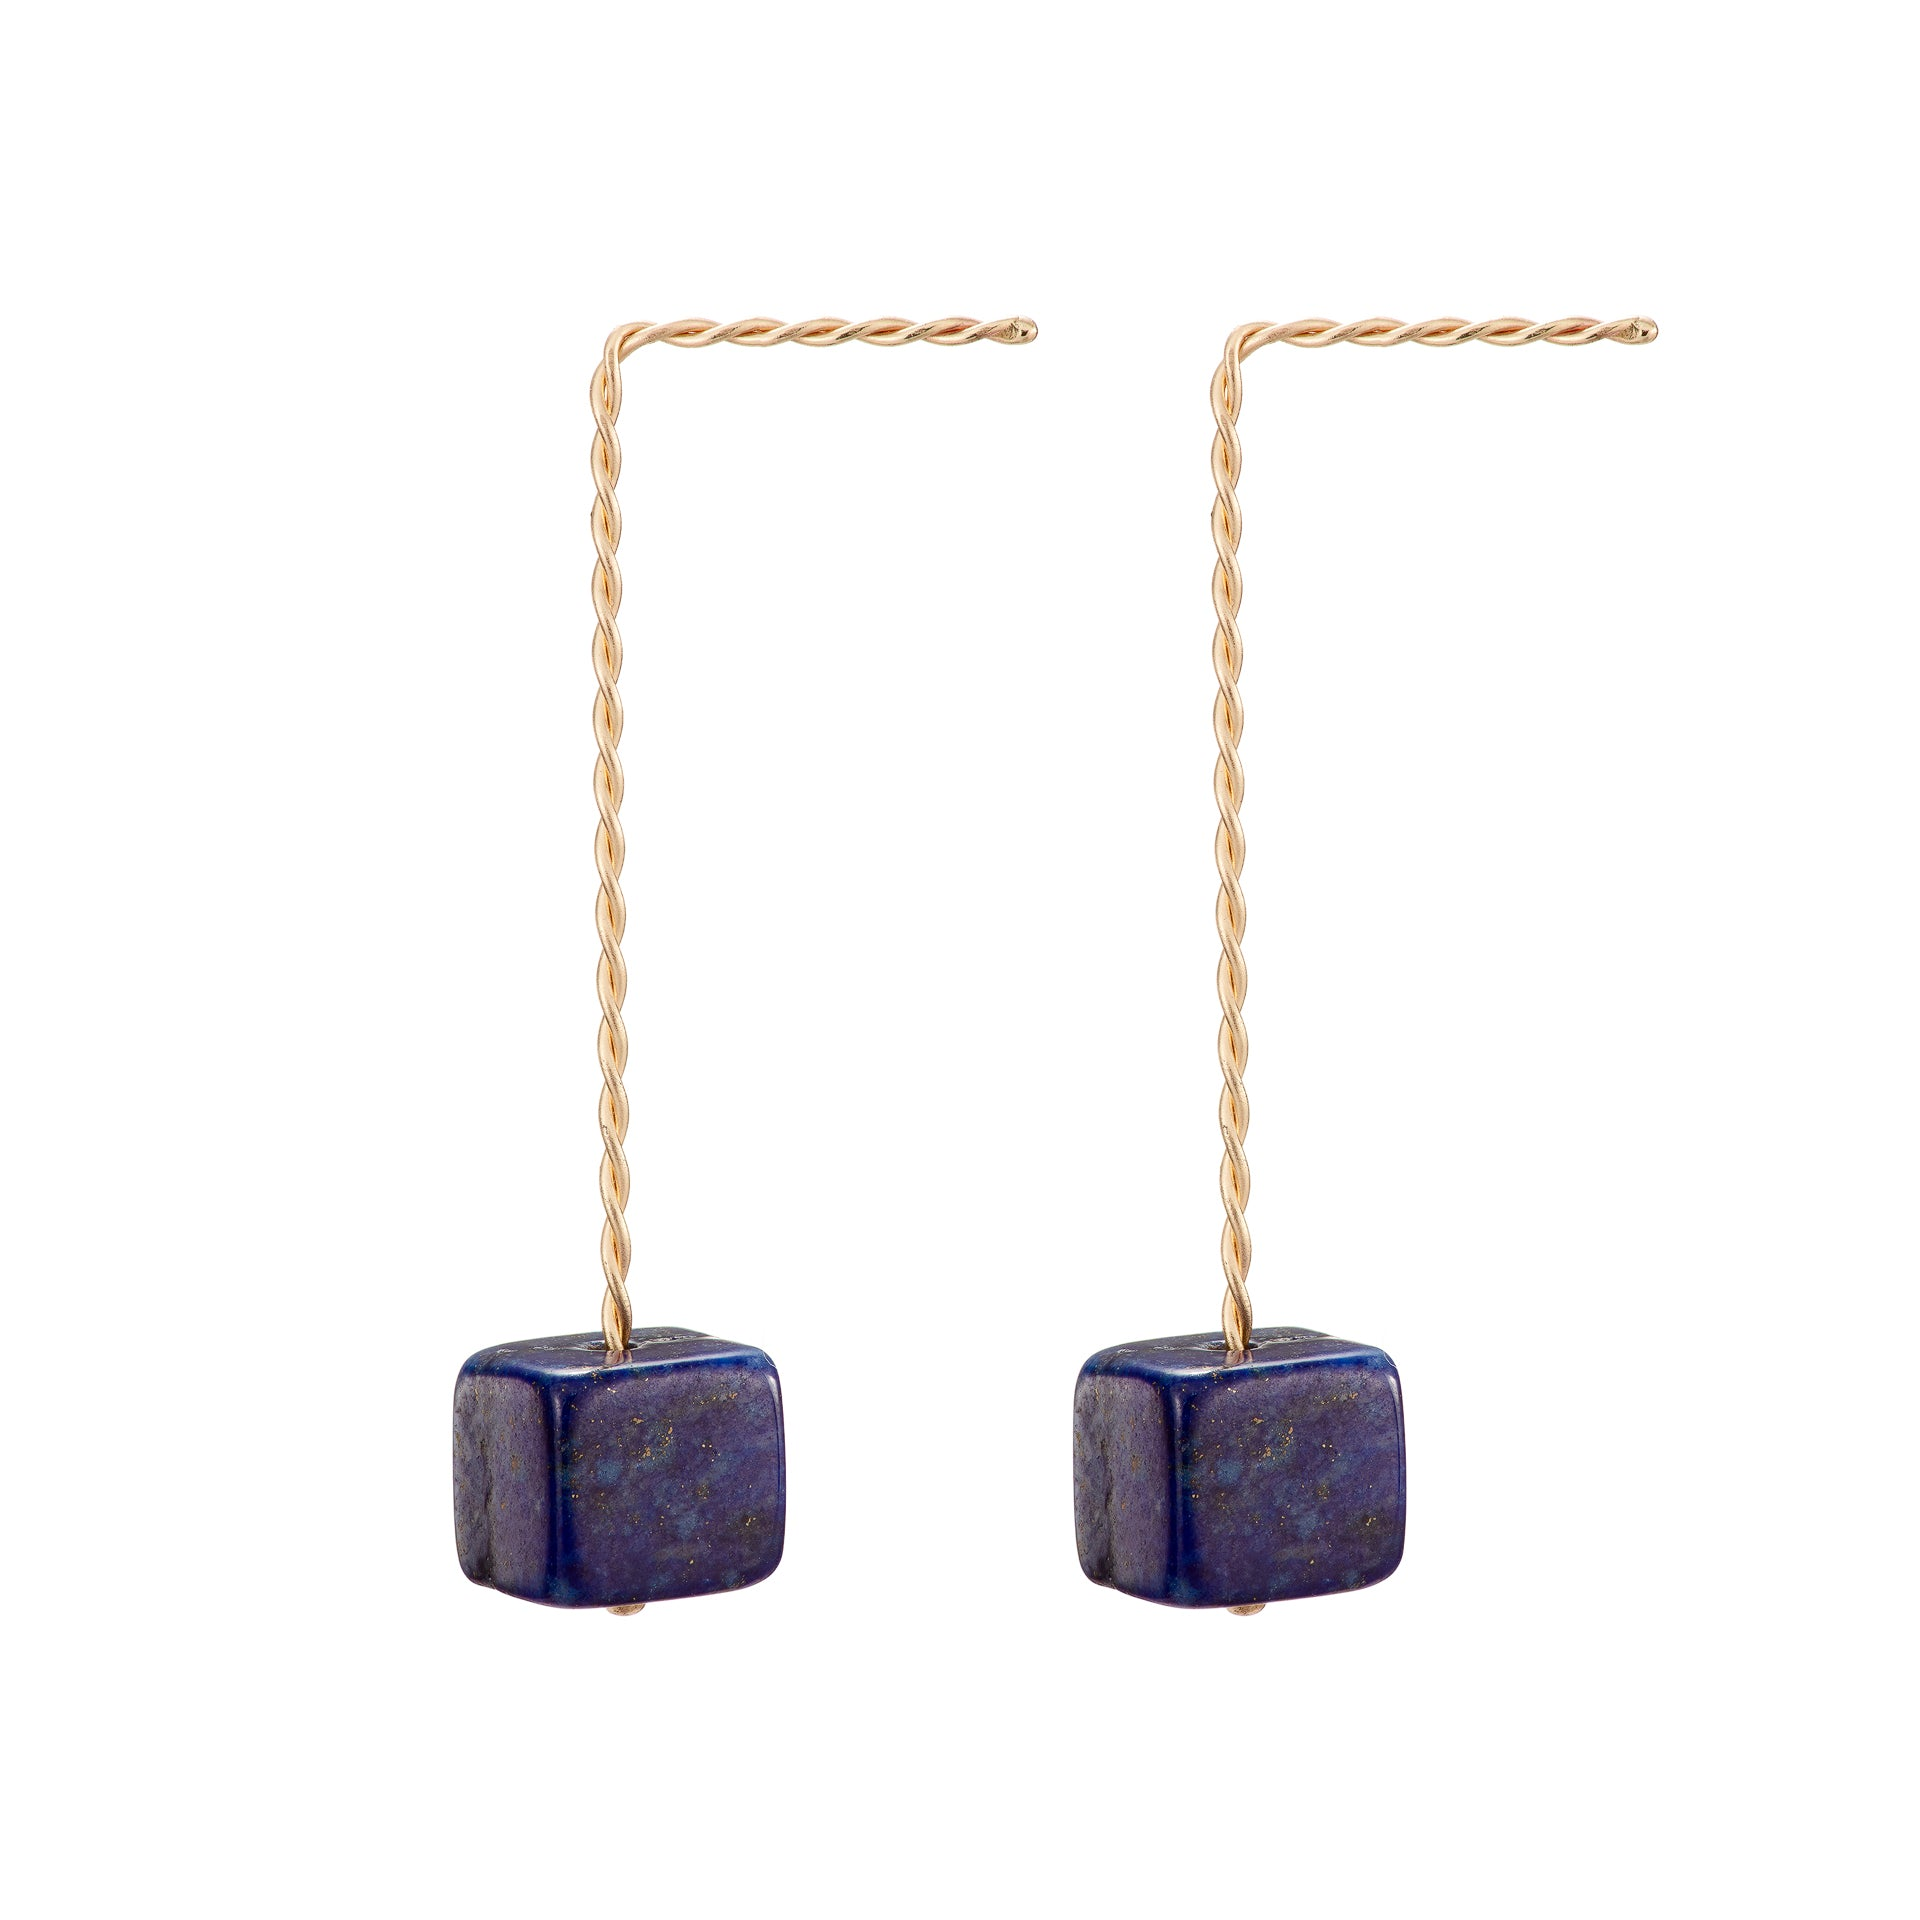 Cubo Long Earrings - Lapis Lazuli